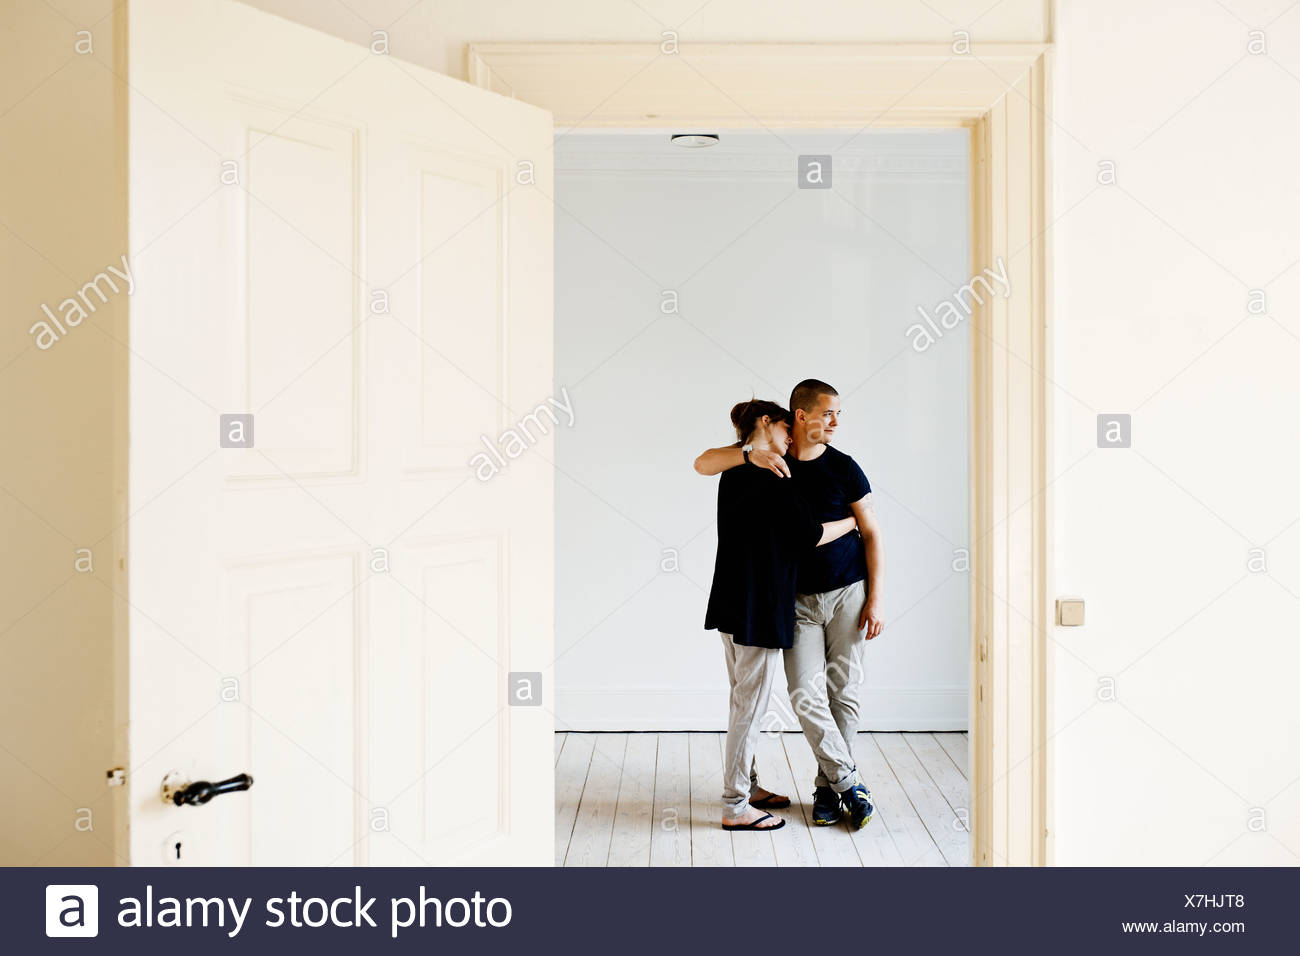 Couple hugging in new home Photo Stock